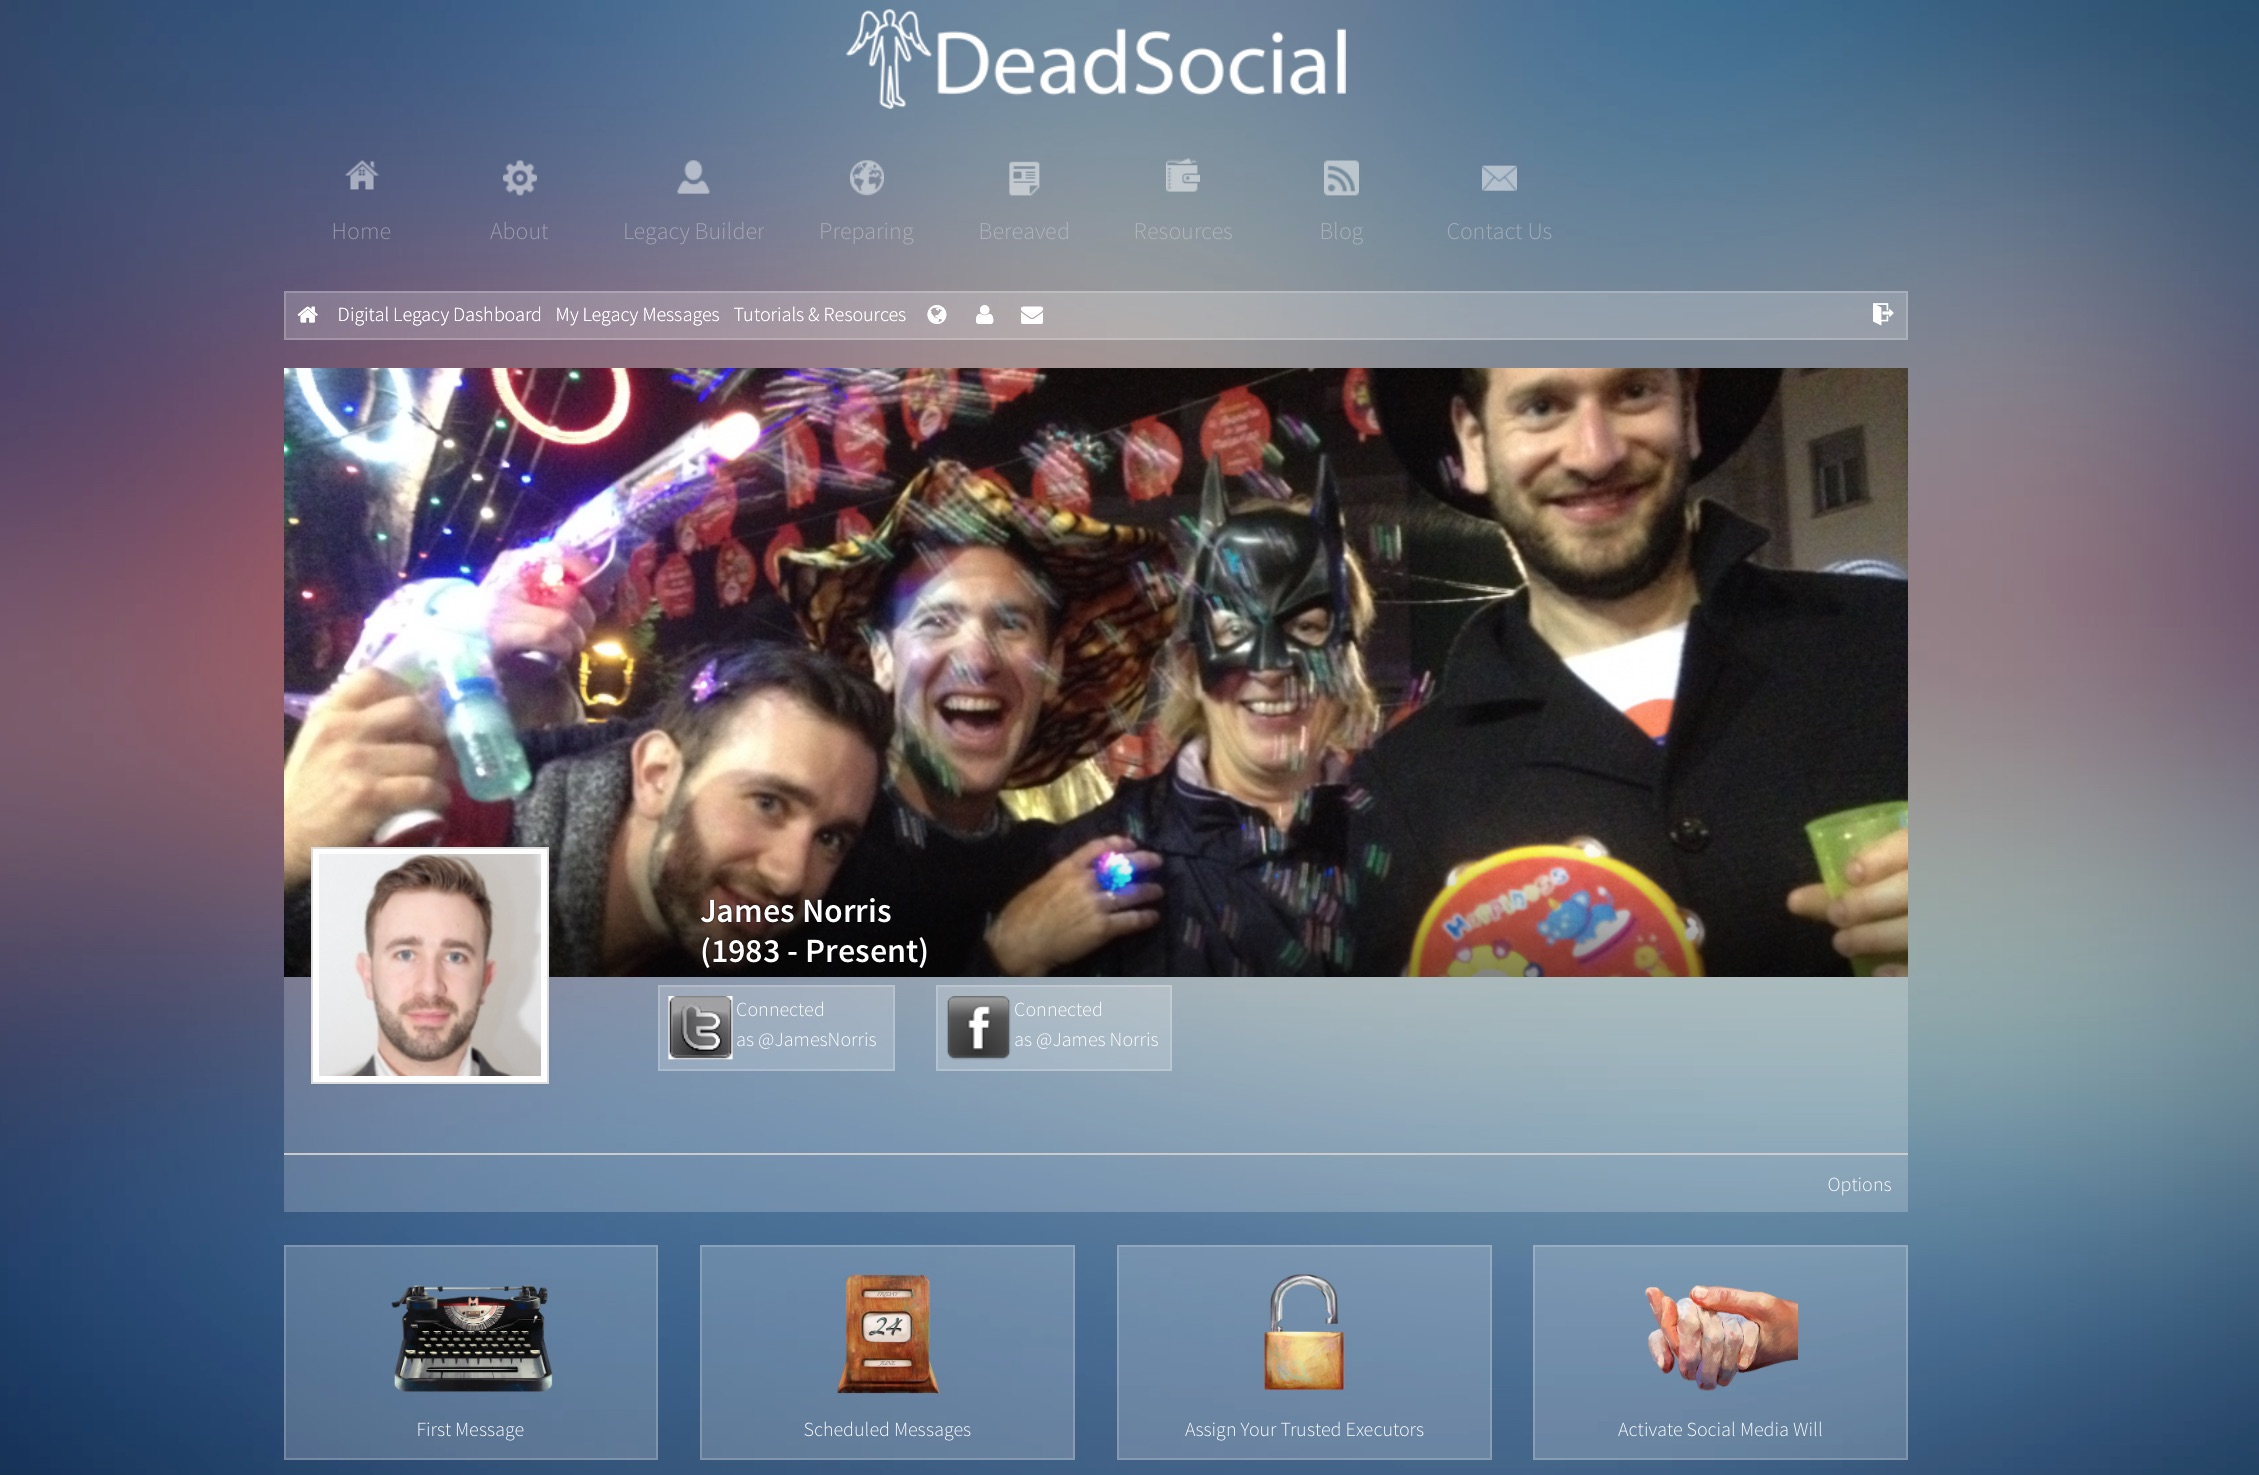 DeadSocial Profile